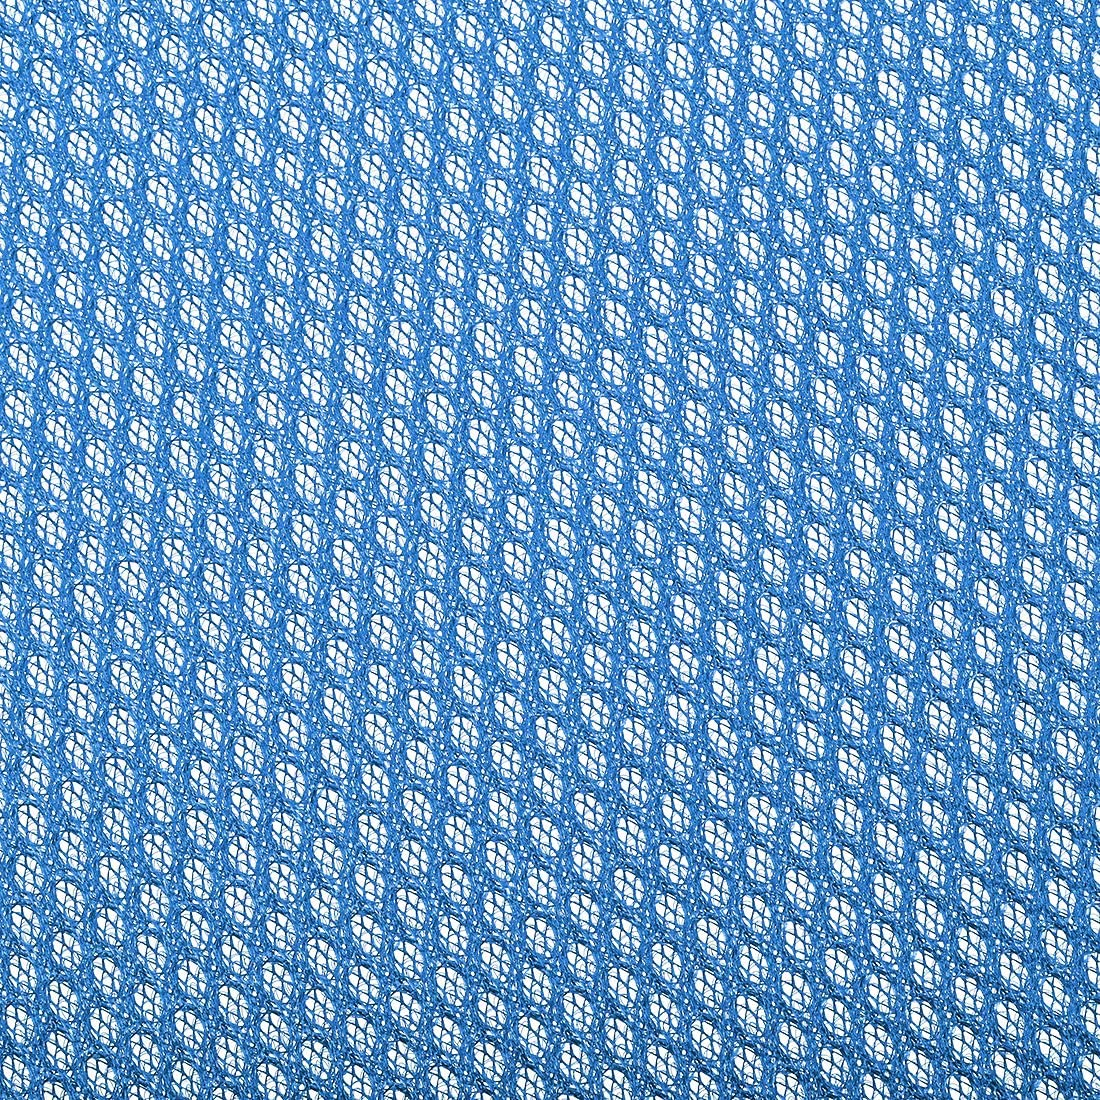 uxcell Speaker Grill Cloth 1x1.45 Meters 39x57 Inch Polyester Fiber Dustproof Stereo Mesh Fabric for Repair DIY Blue